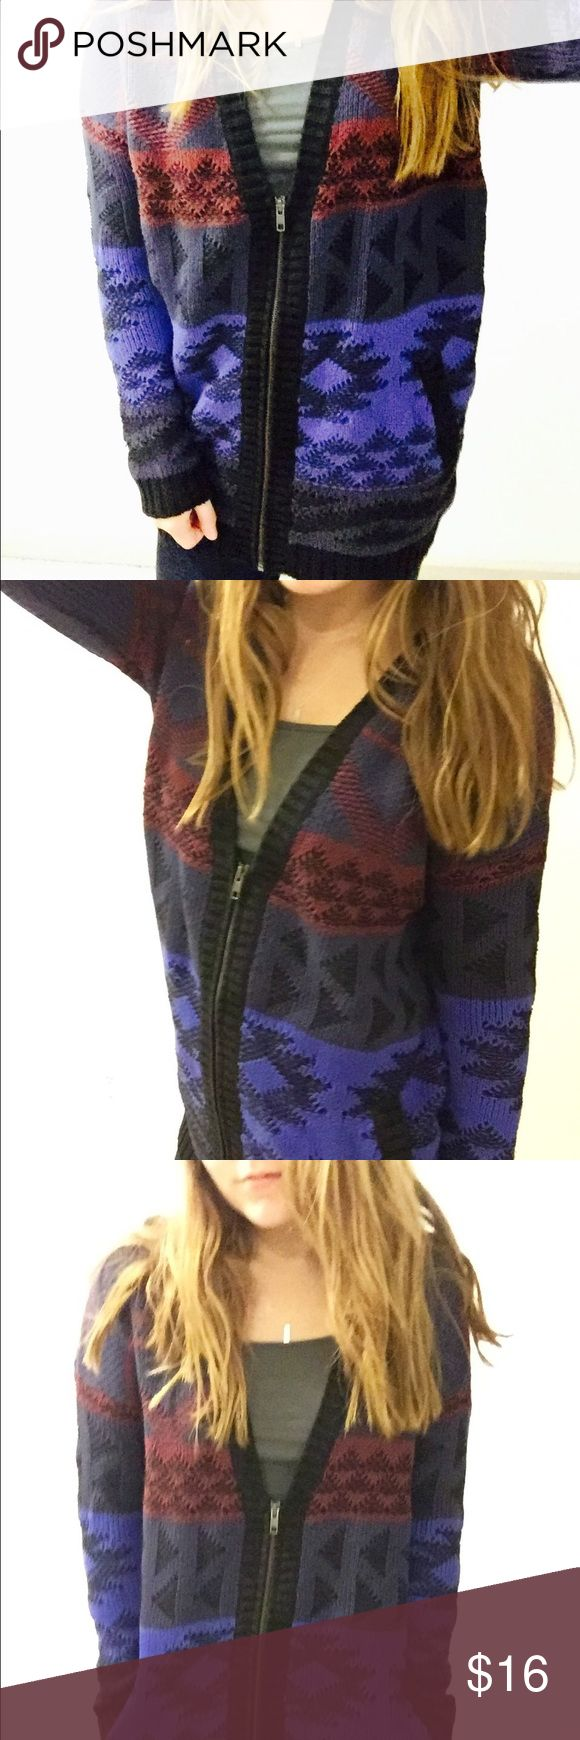 Heavy Knit Aztec Zip Cardigan This cranberry, black, grey and blue zip up cardigan is super comfy. Originally made by Old Navy. Size small yet oversized and was never worn. Sweaters Cardigans